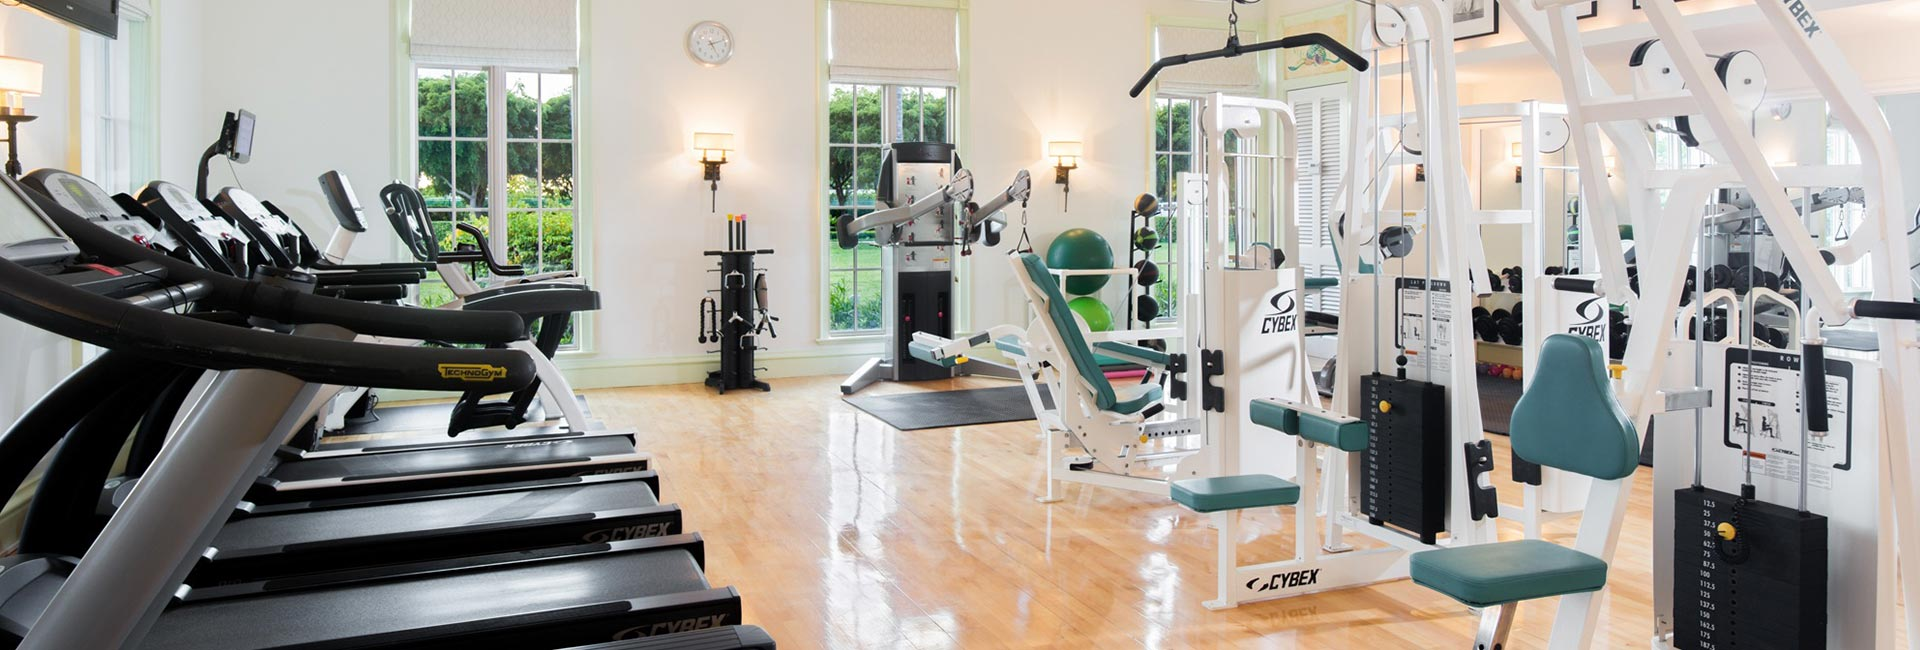 The Palms fitness center offers exercise equipment, & onsite personal trainers.